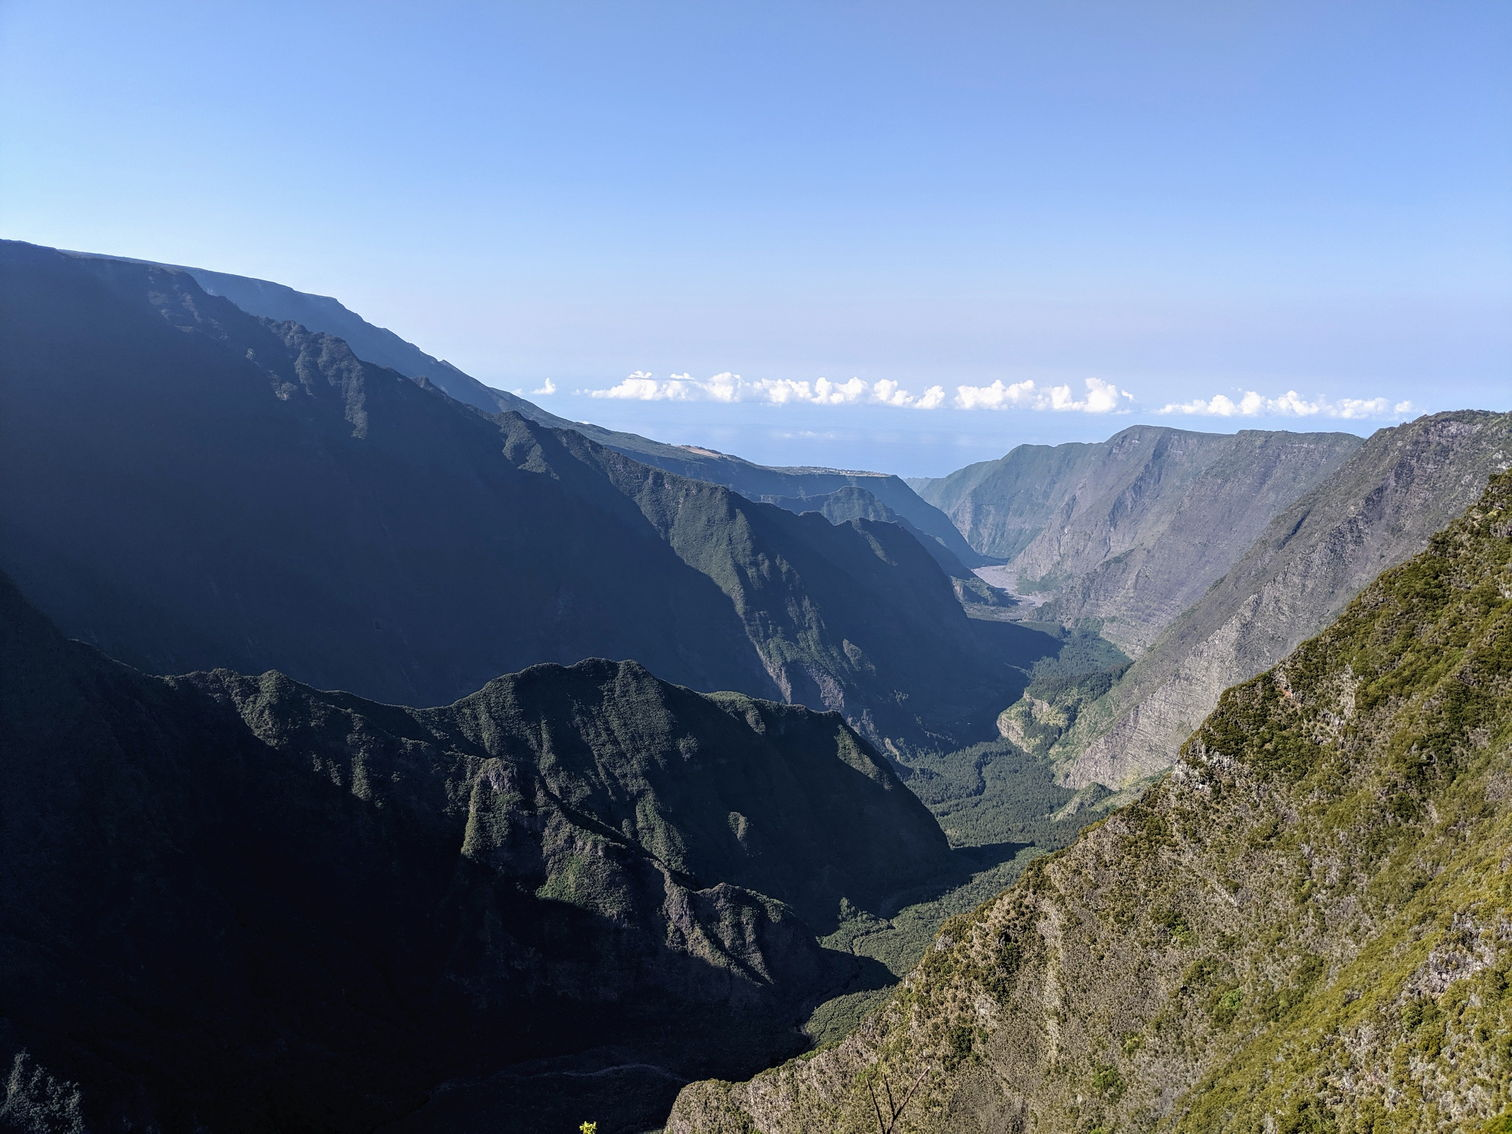 View of the valley near Piton de la Fournaise